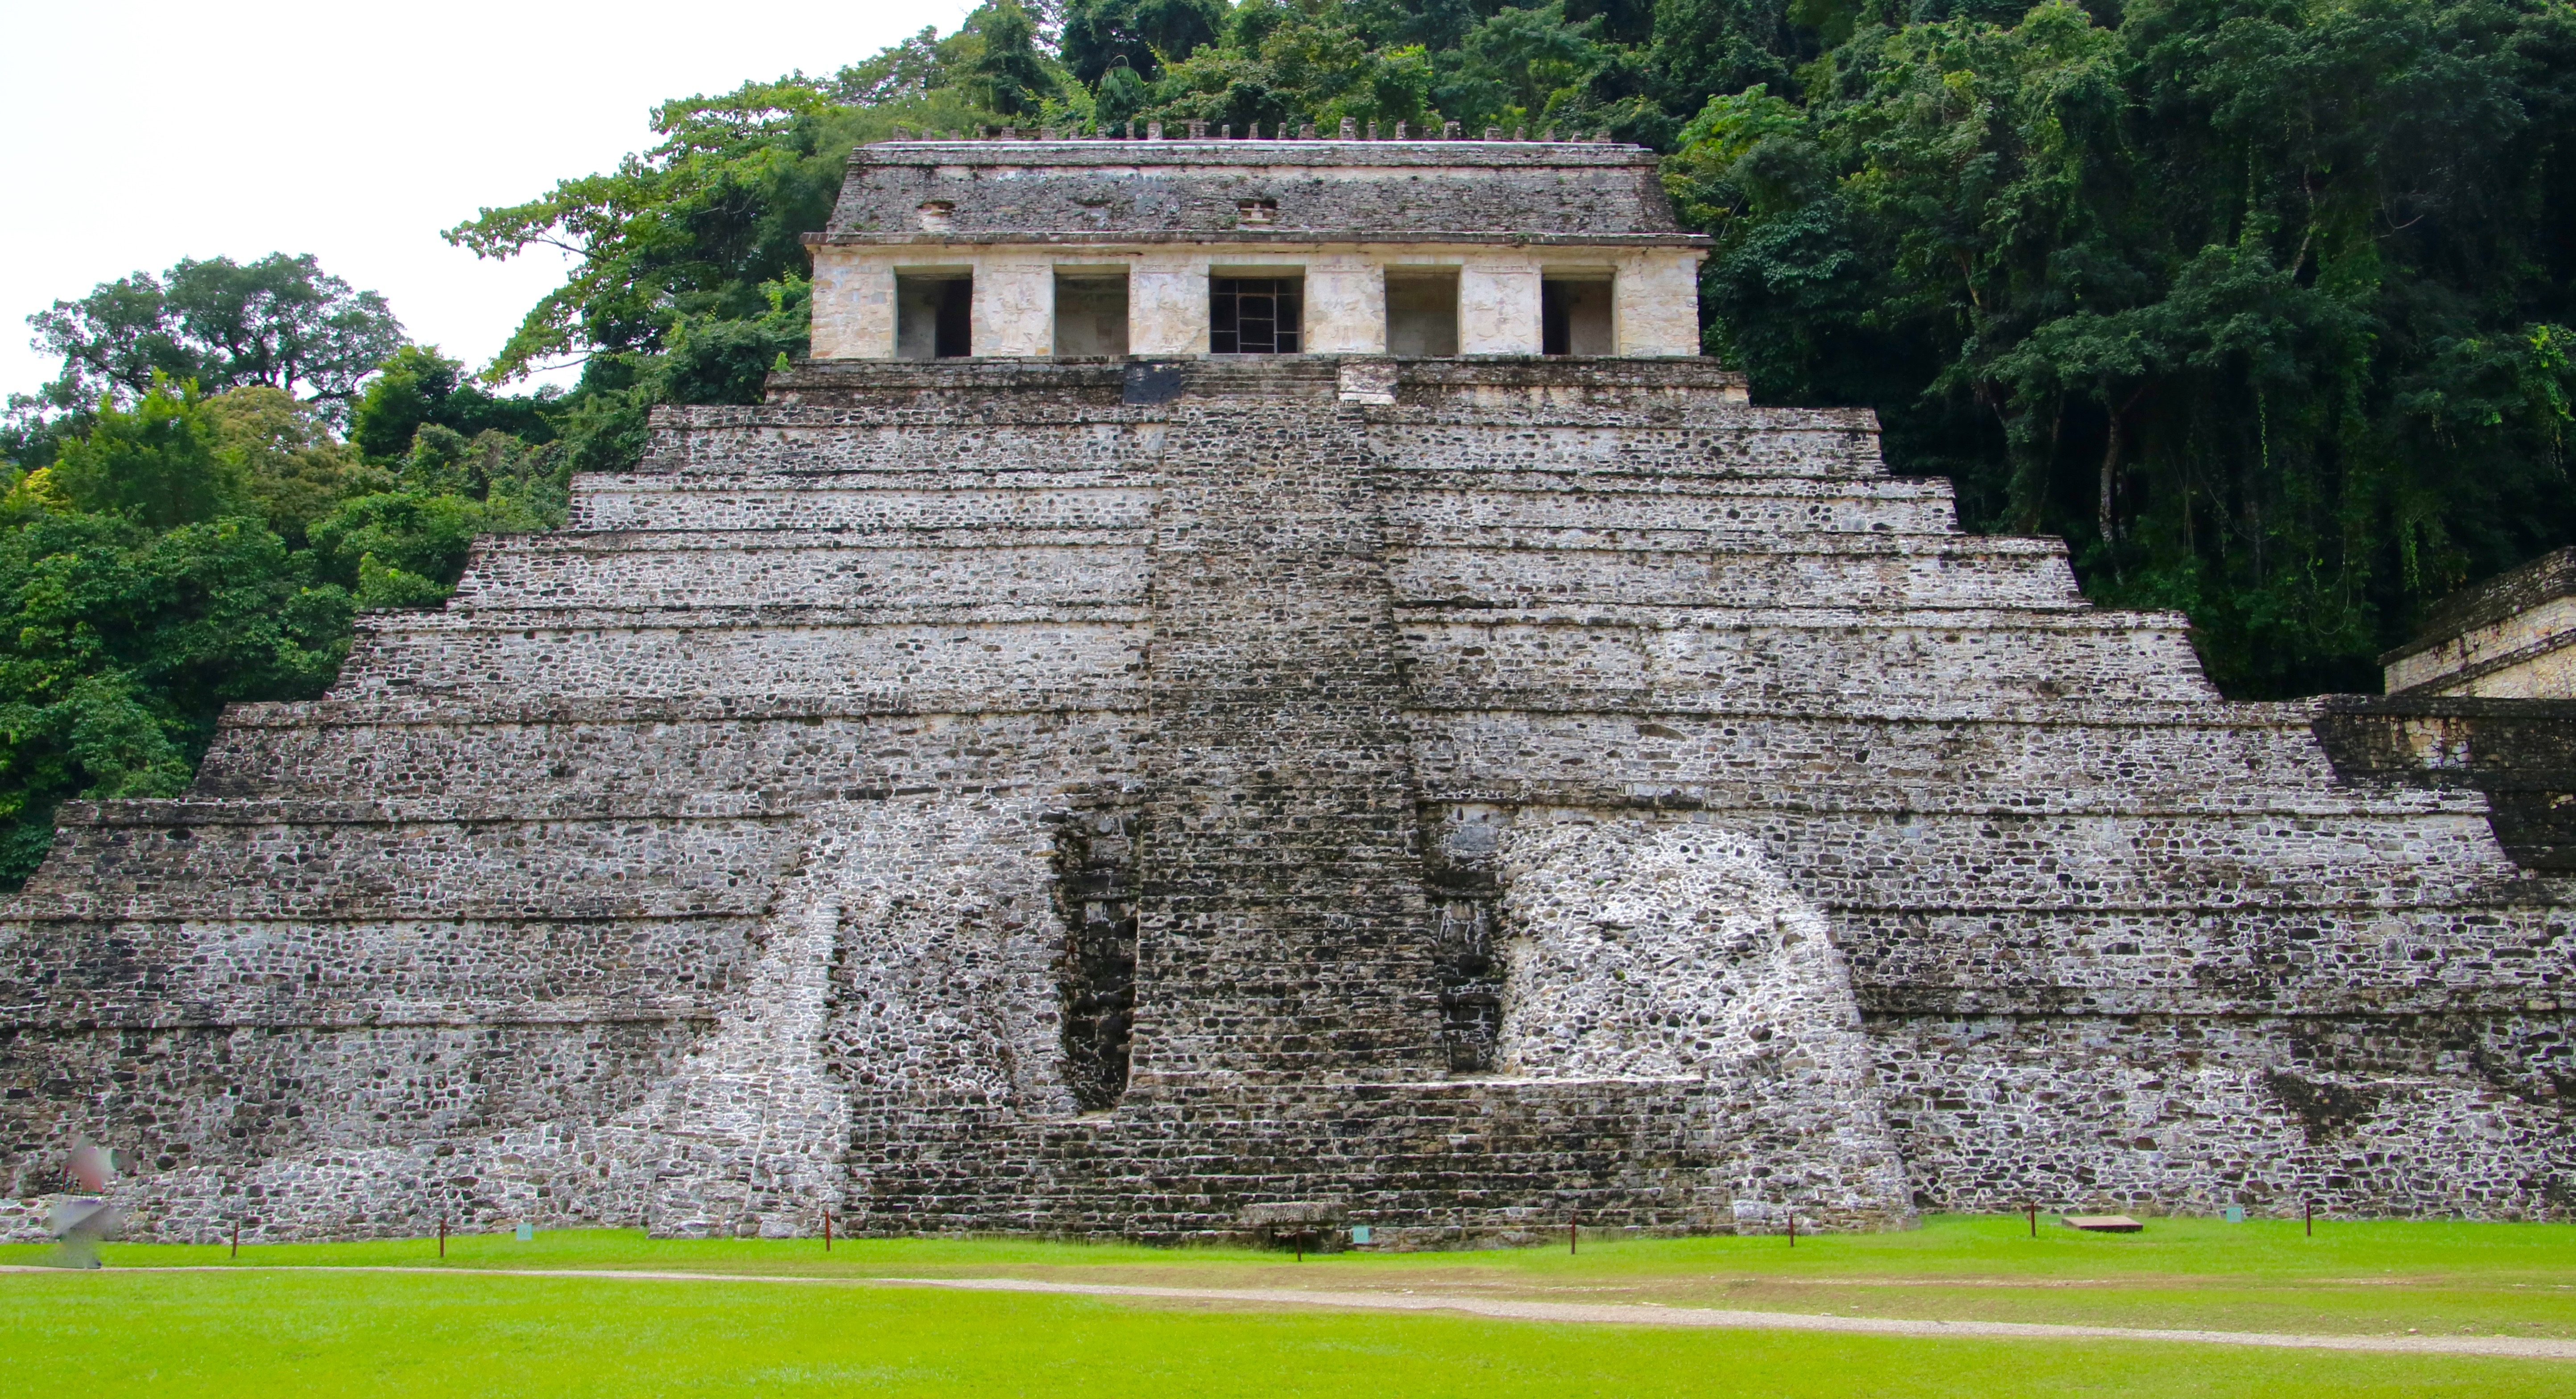 The Mayans Culture